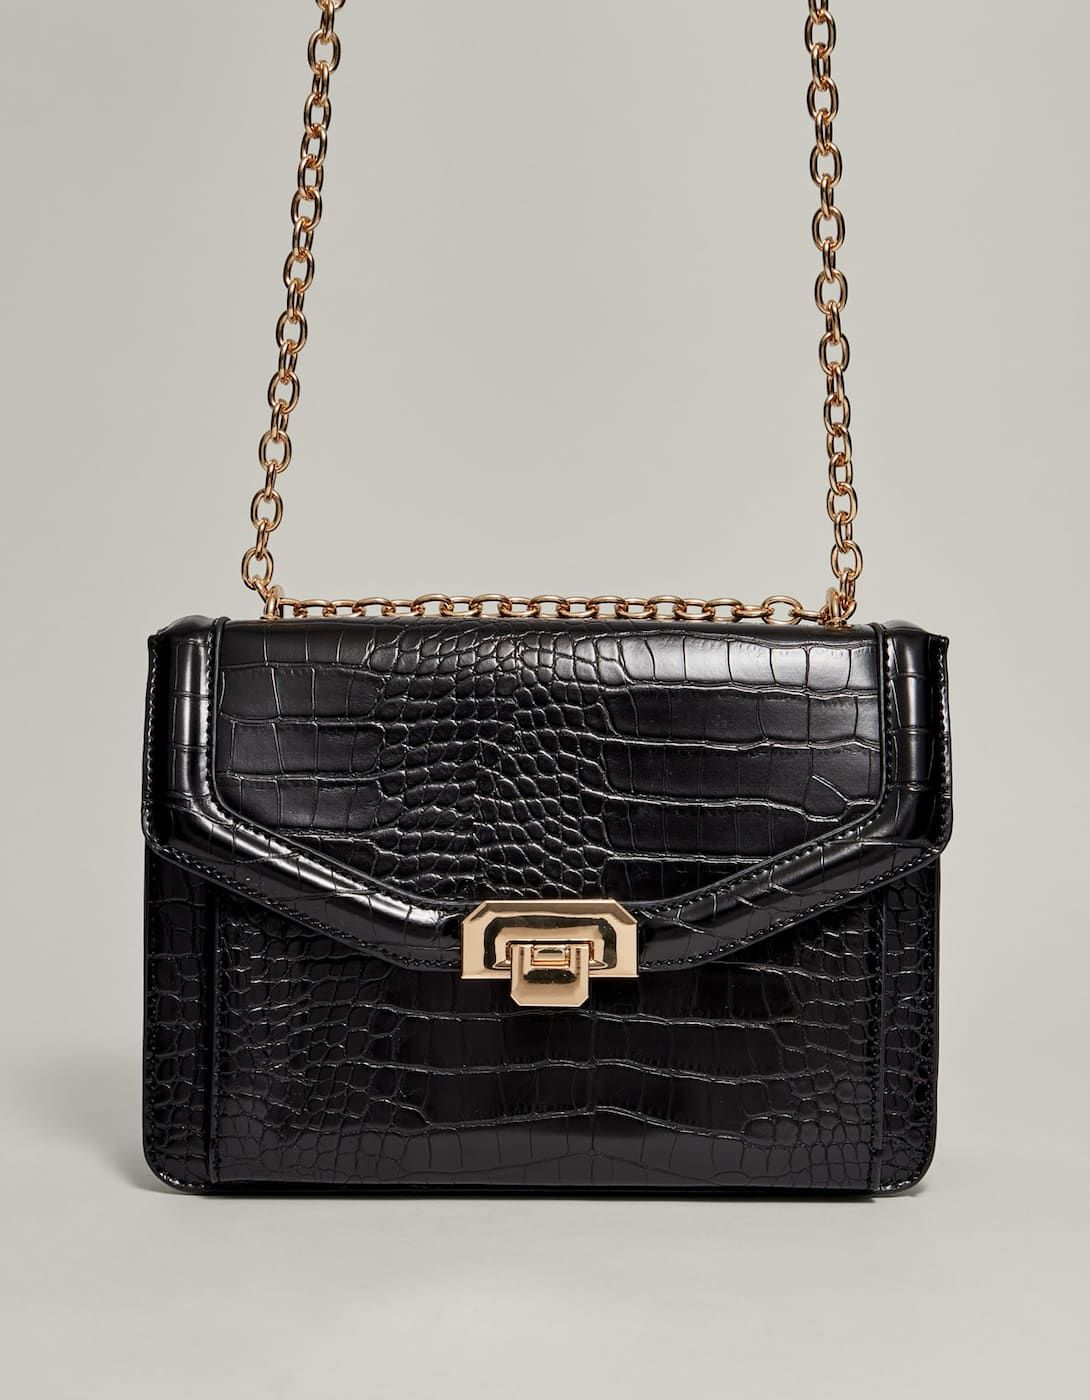 08ec5578453f Mock croc crossbody bag - Just In | Stradivarius United Kingdom